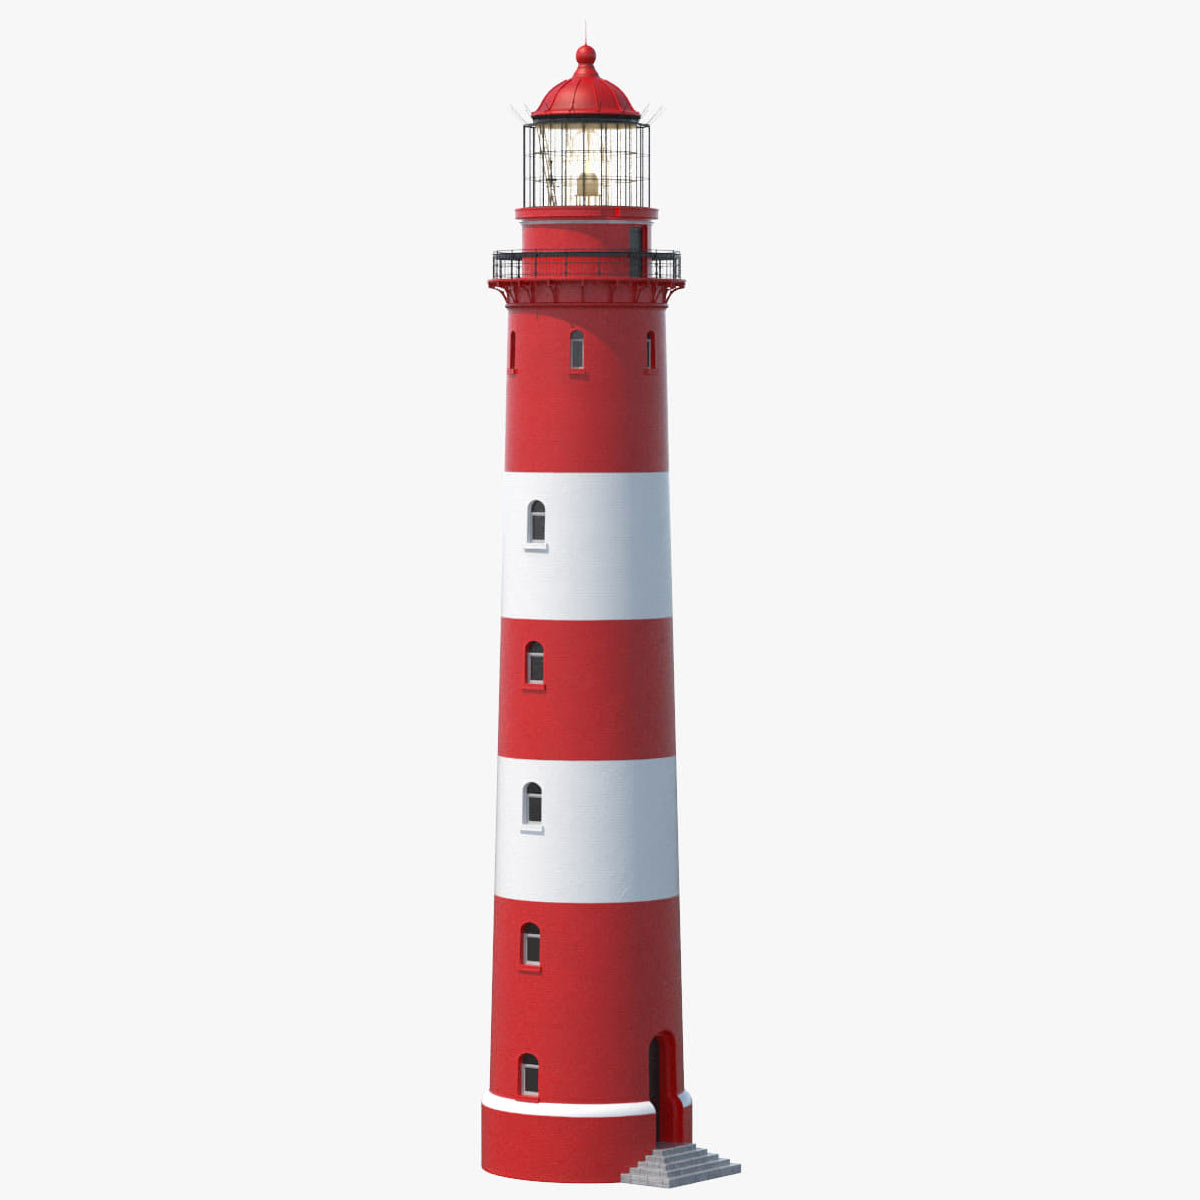 lighthouse 3d model by Tornado Studio